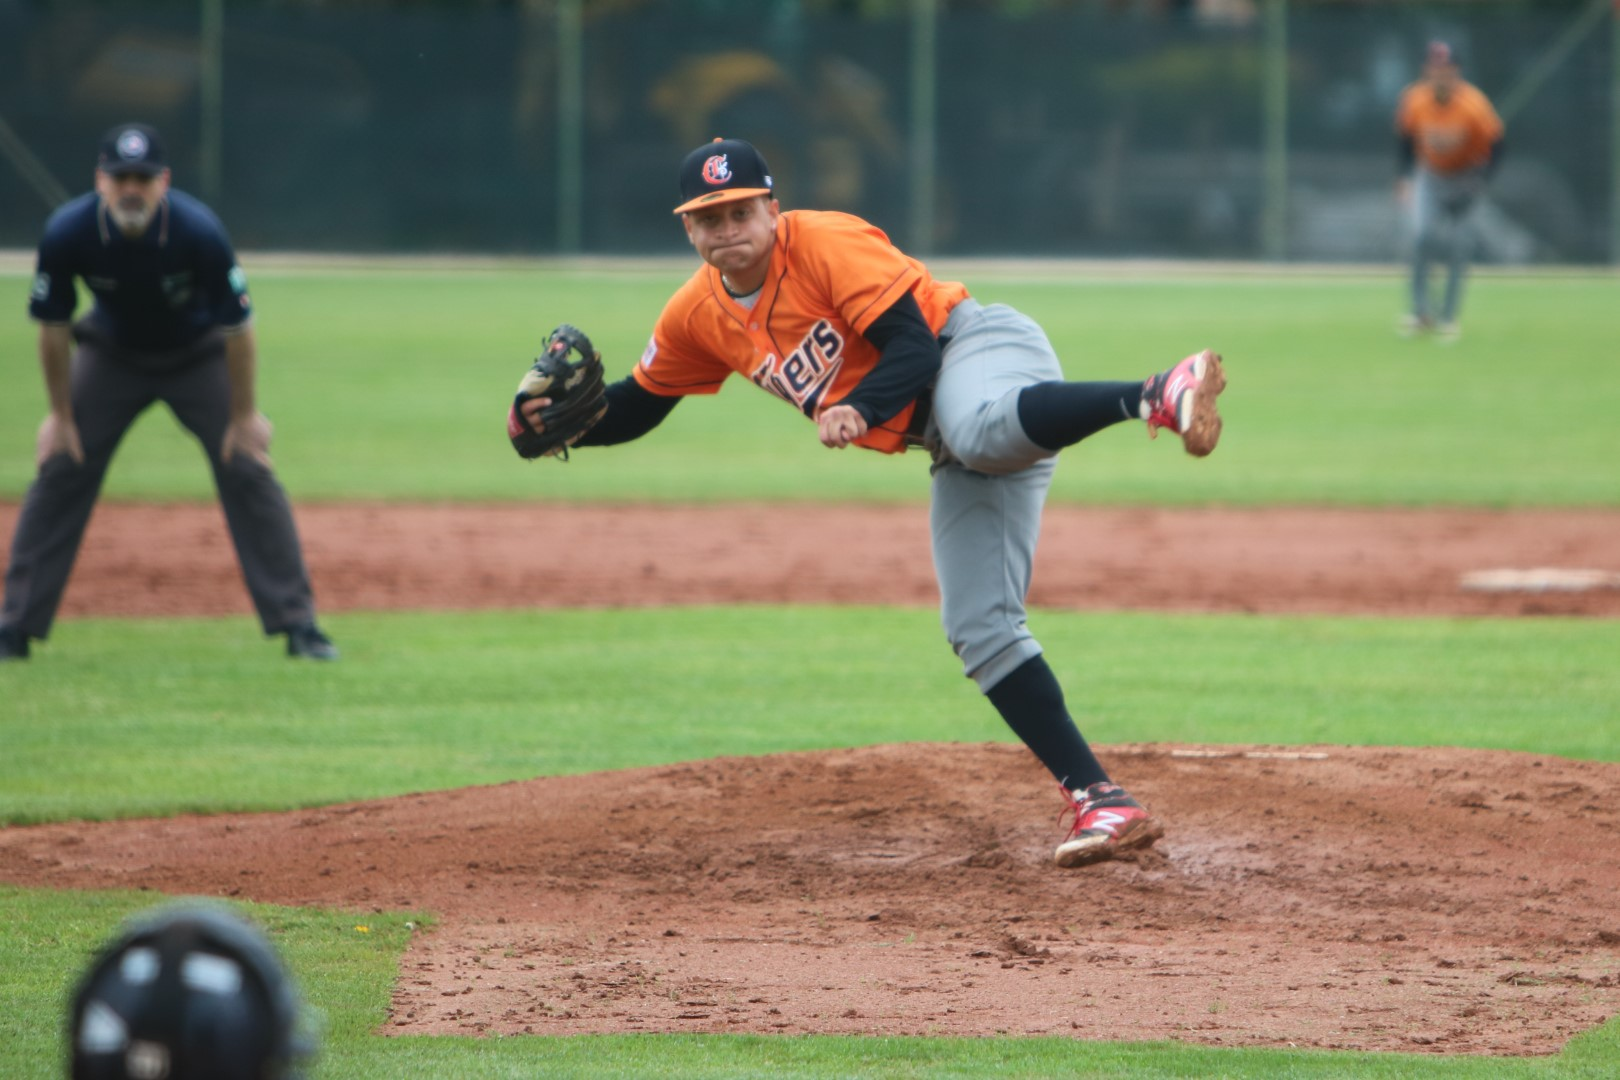 Joseph Silva, 7IP 5H 2BB 3SO ©Baseball Clipper